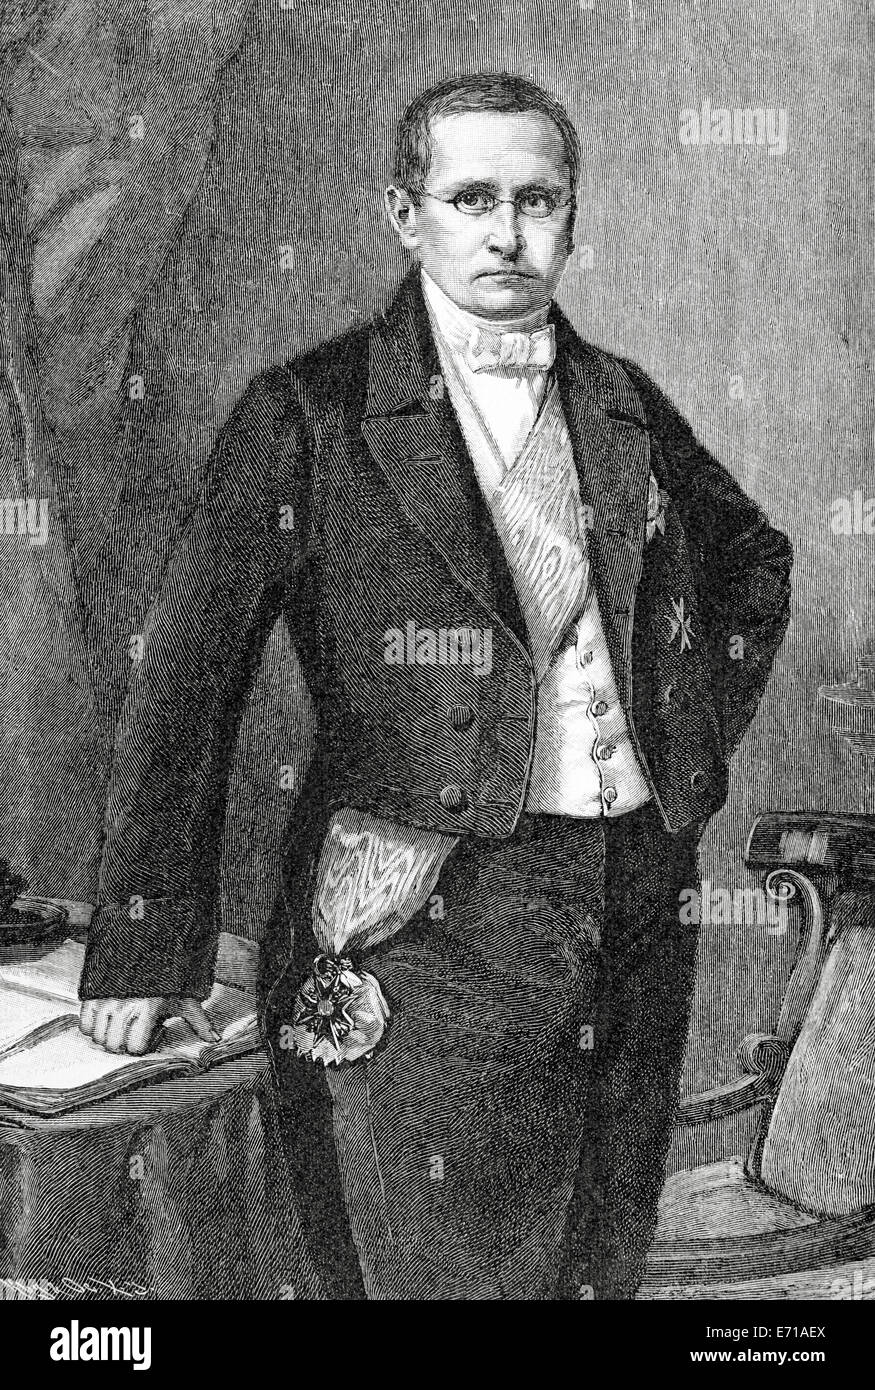 Otto Theodor von Manteuffel (1805-1882). Conservative Prussian statesman, serving nearly a decade as prime minister. Stock Photo